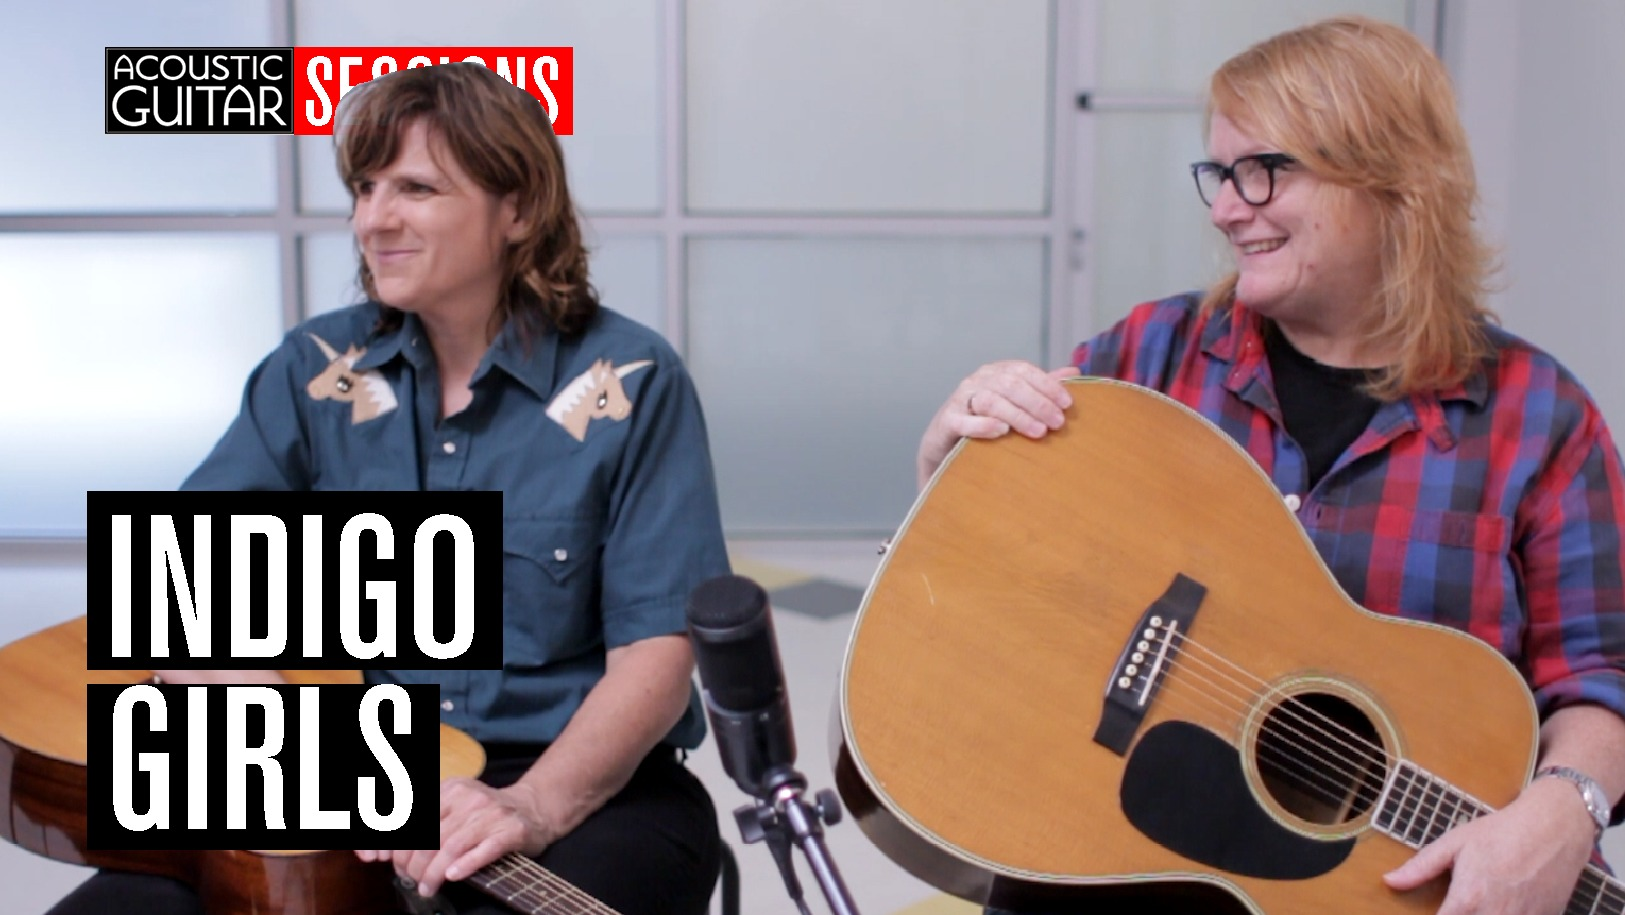 acoustic guitar sessions presents indigo girls acoustic guitar